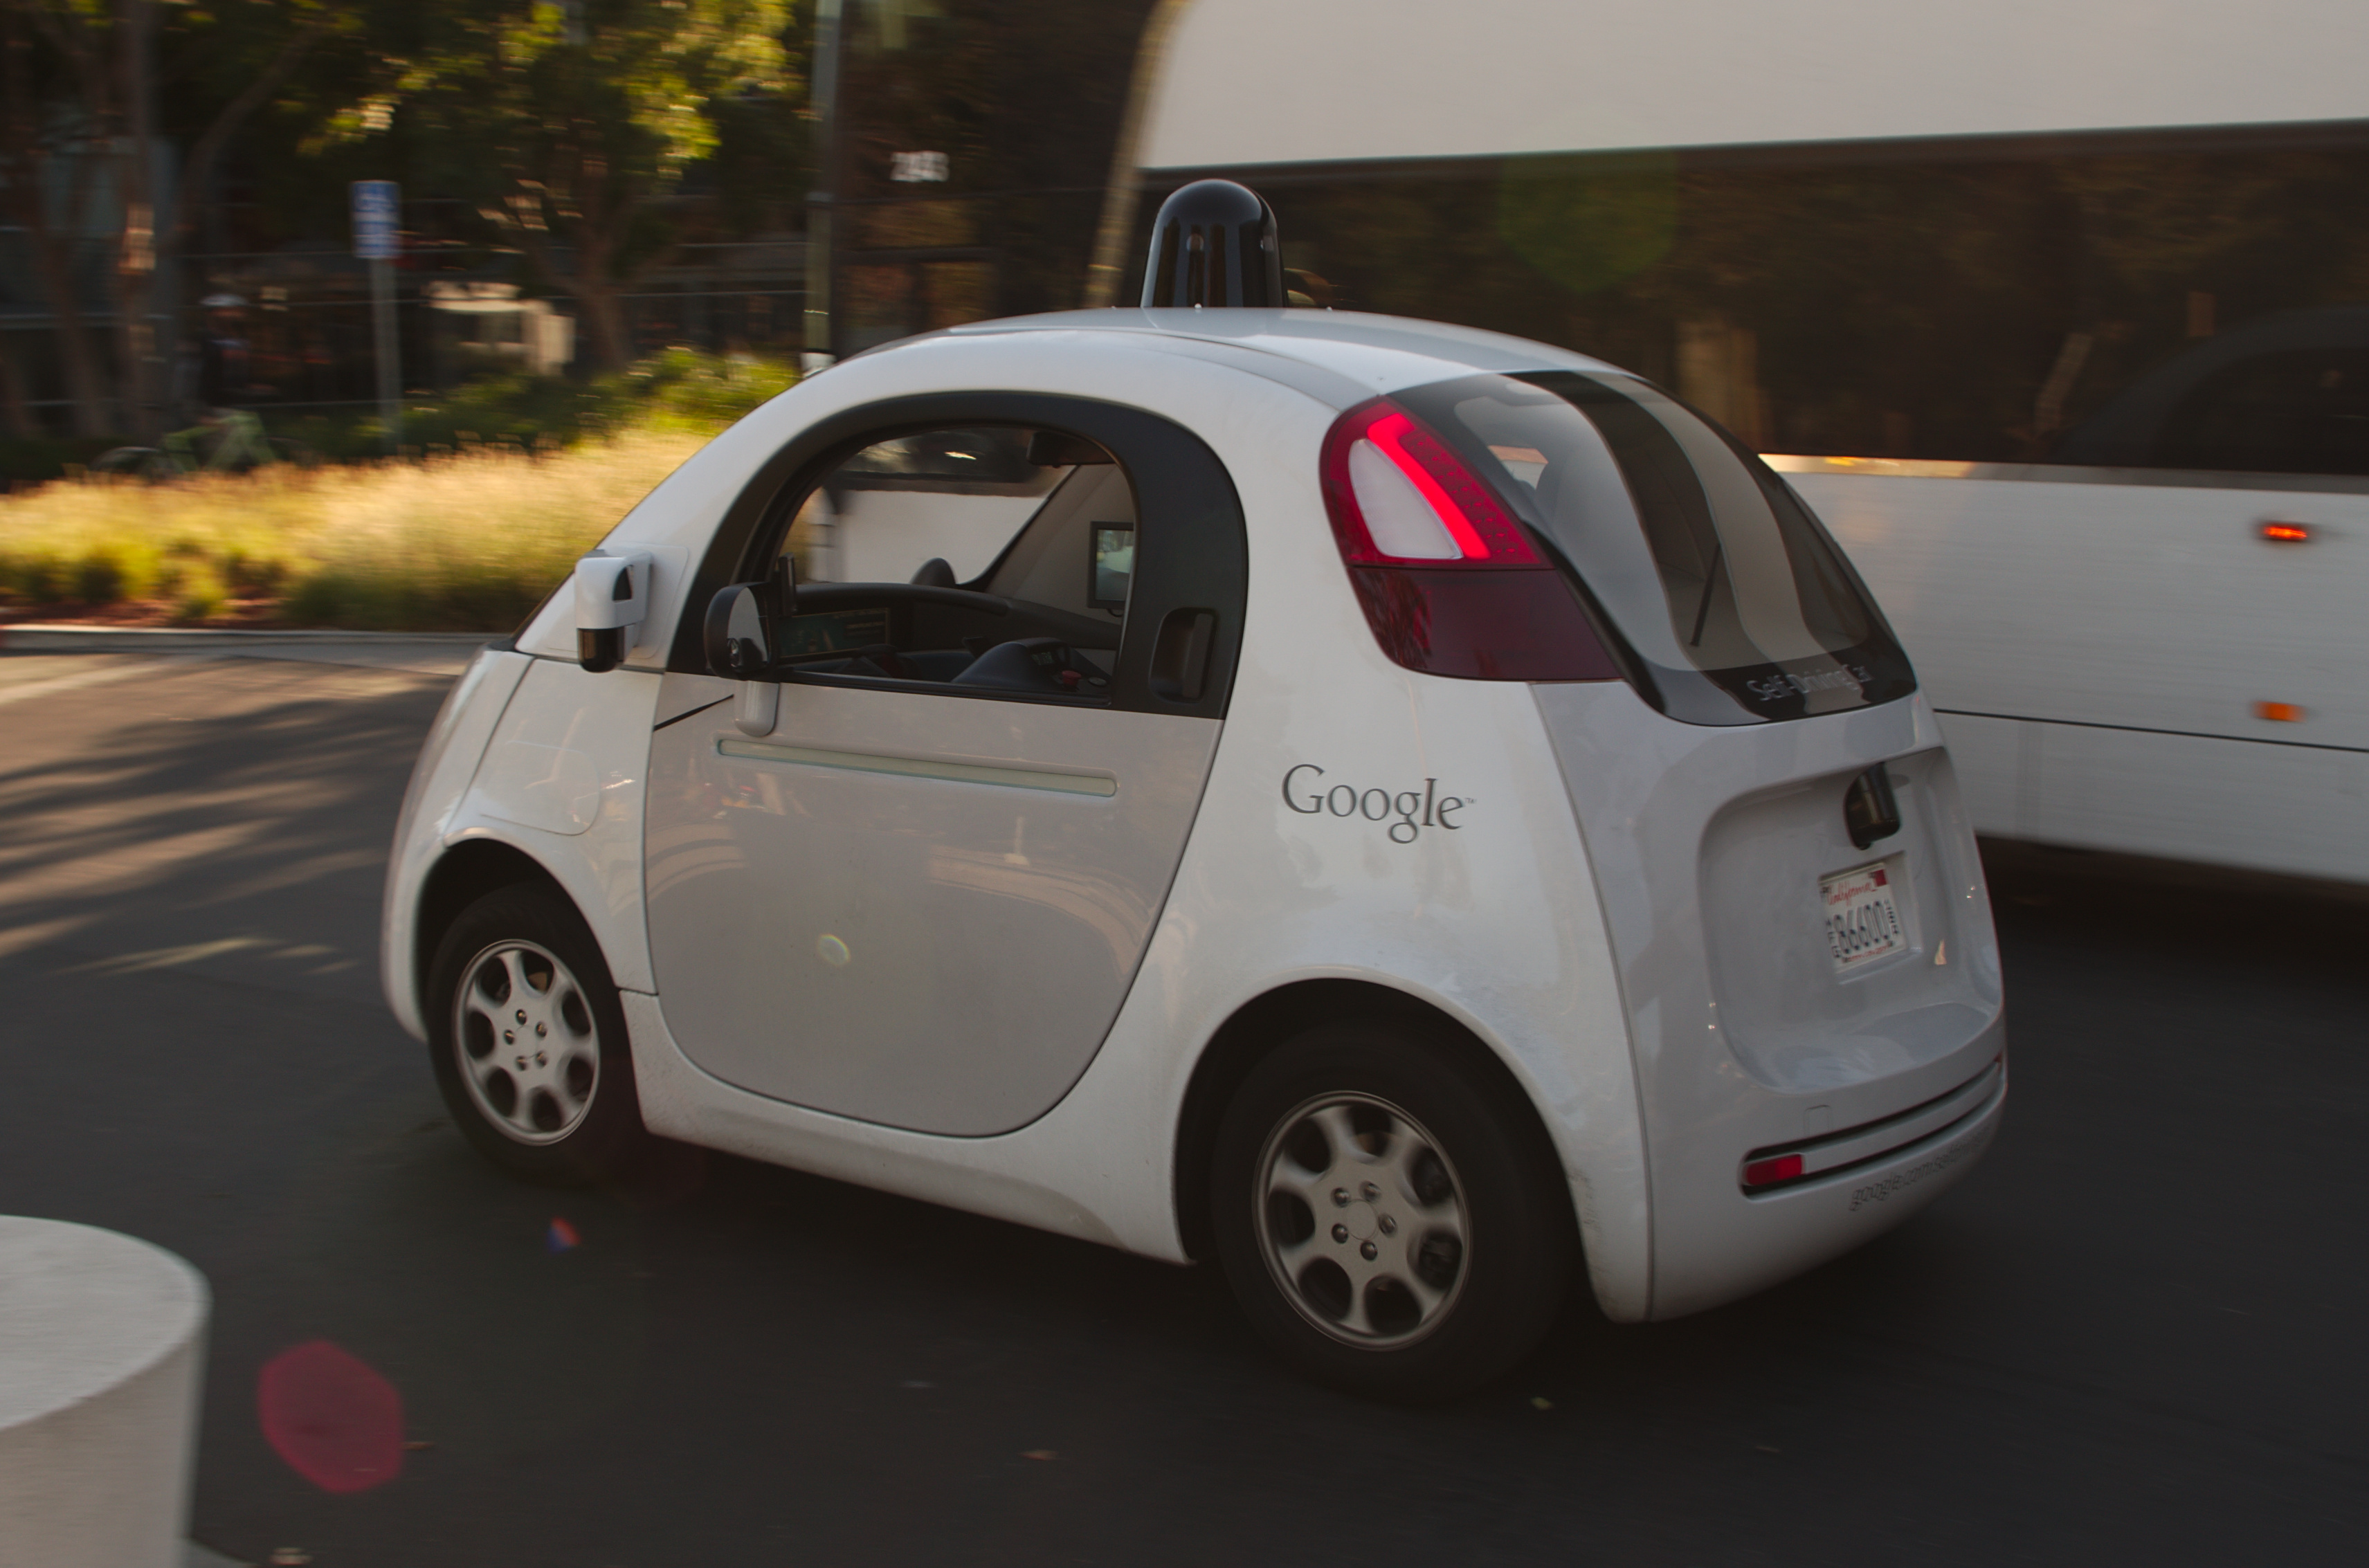 What with self-driving cars in the city?